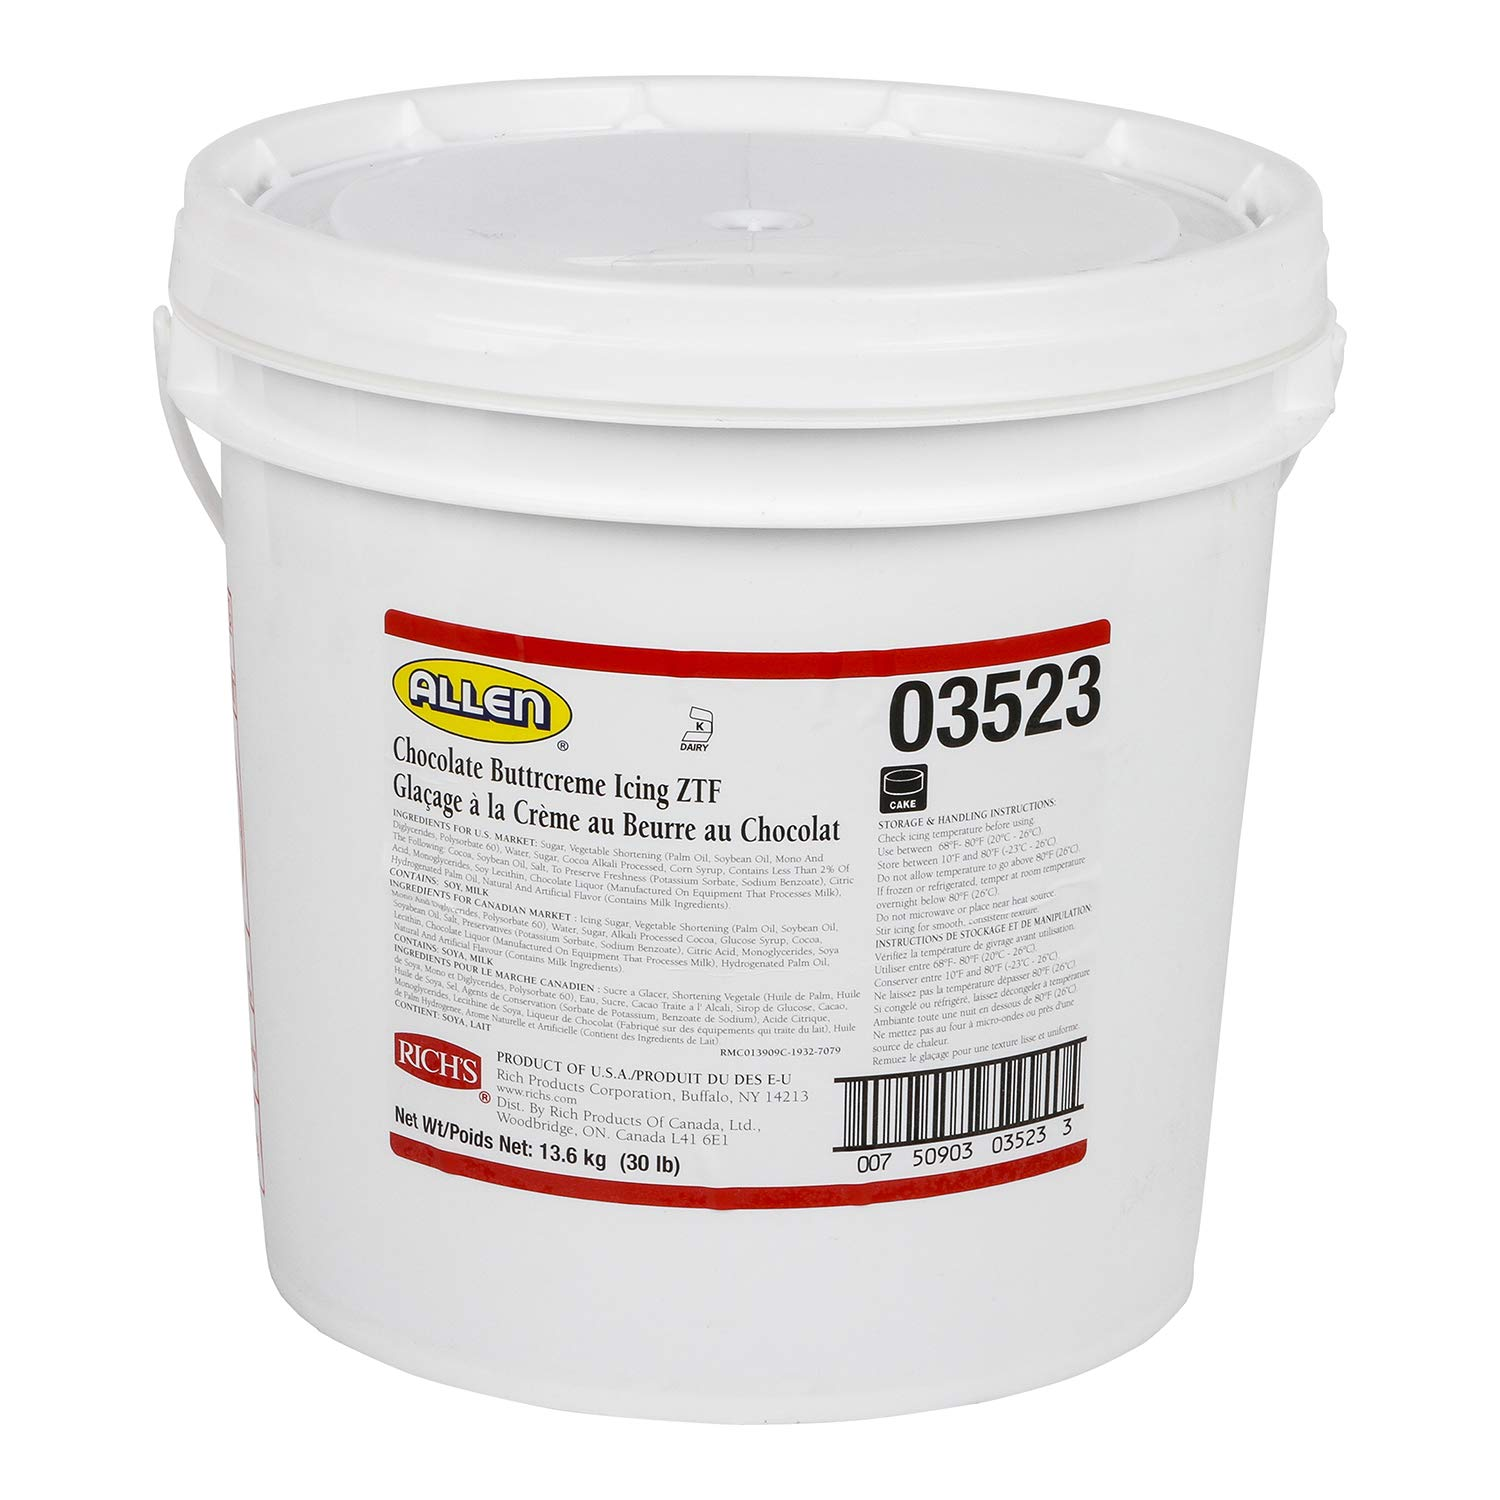 Rich's JW Allen Pre-Whipped Chocolate Buttrcreme Icing ZTF, 30 lb by Rich's